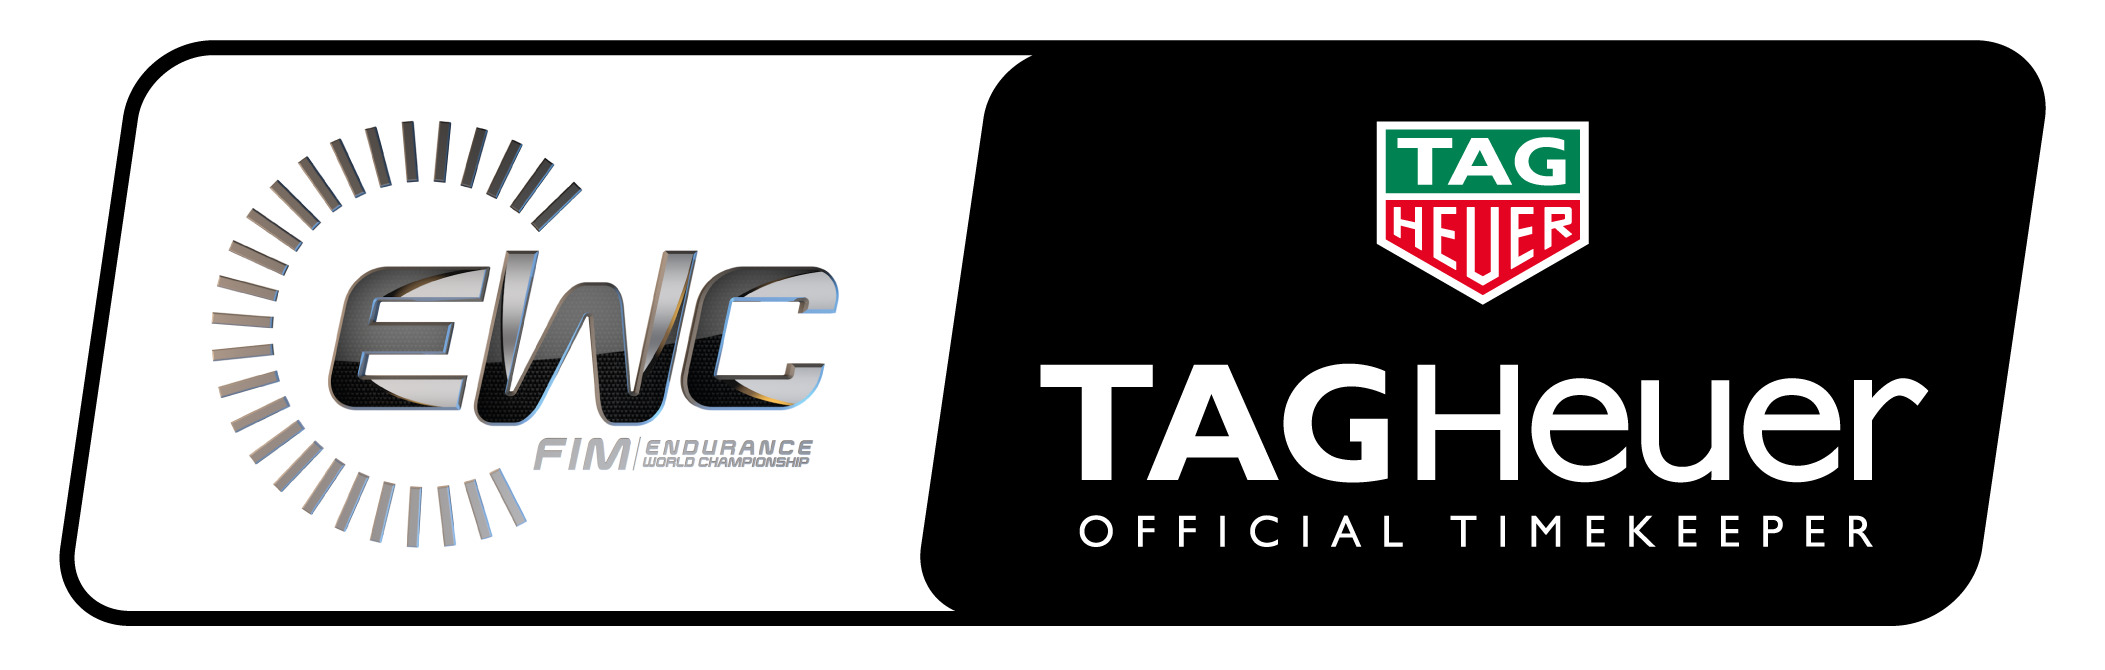 EUROSPORT EVENTS AND TAG HEUER EXTEND PARTNERSHIP INTO FIM EWC